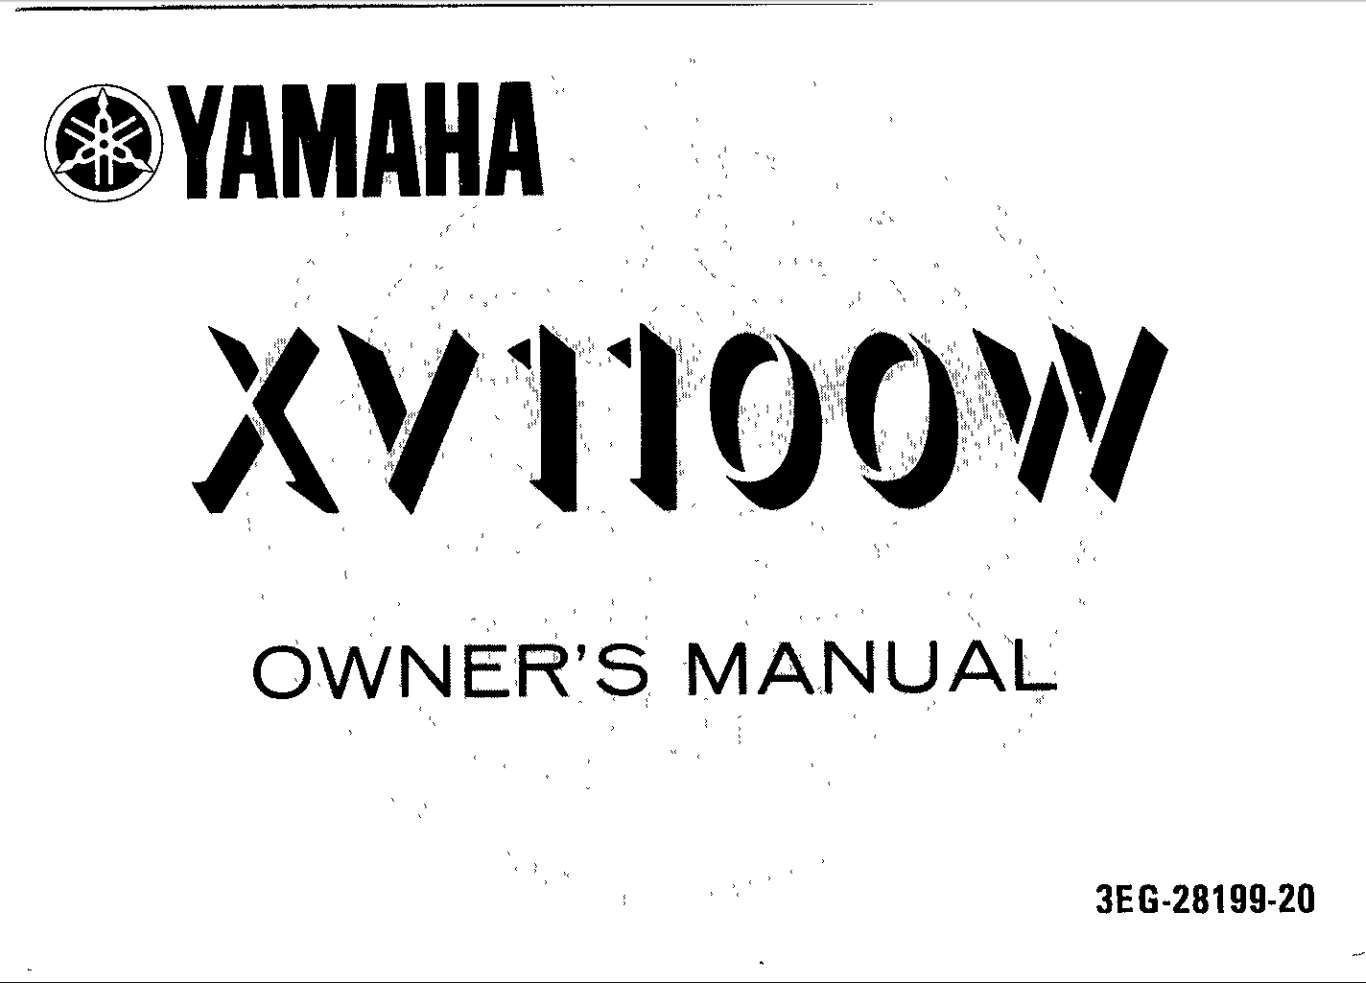 Yamaha Xv1000 W 1989 Owner S Manual Has Been Published On Procarmanuals Com Https Procarmanuals Com Yamaha Xv1000 W 1989 Owners Manual Owners Manuals Yamaha